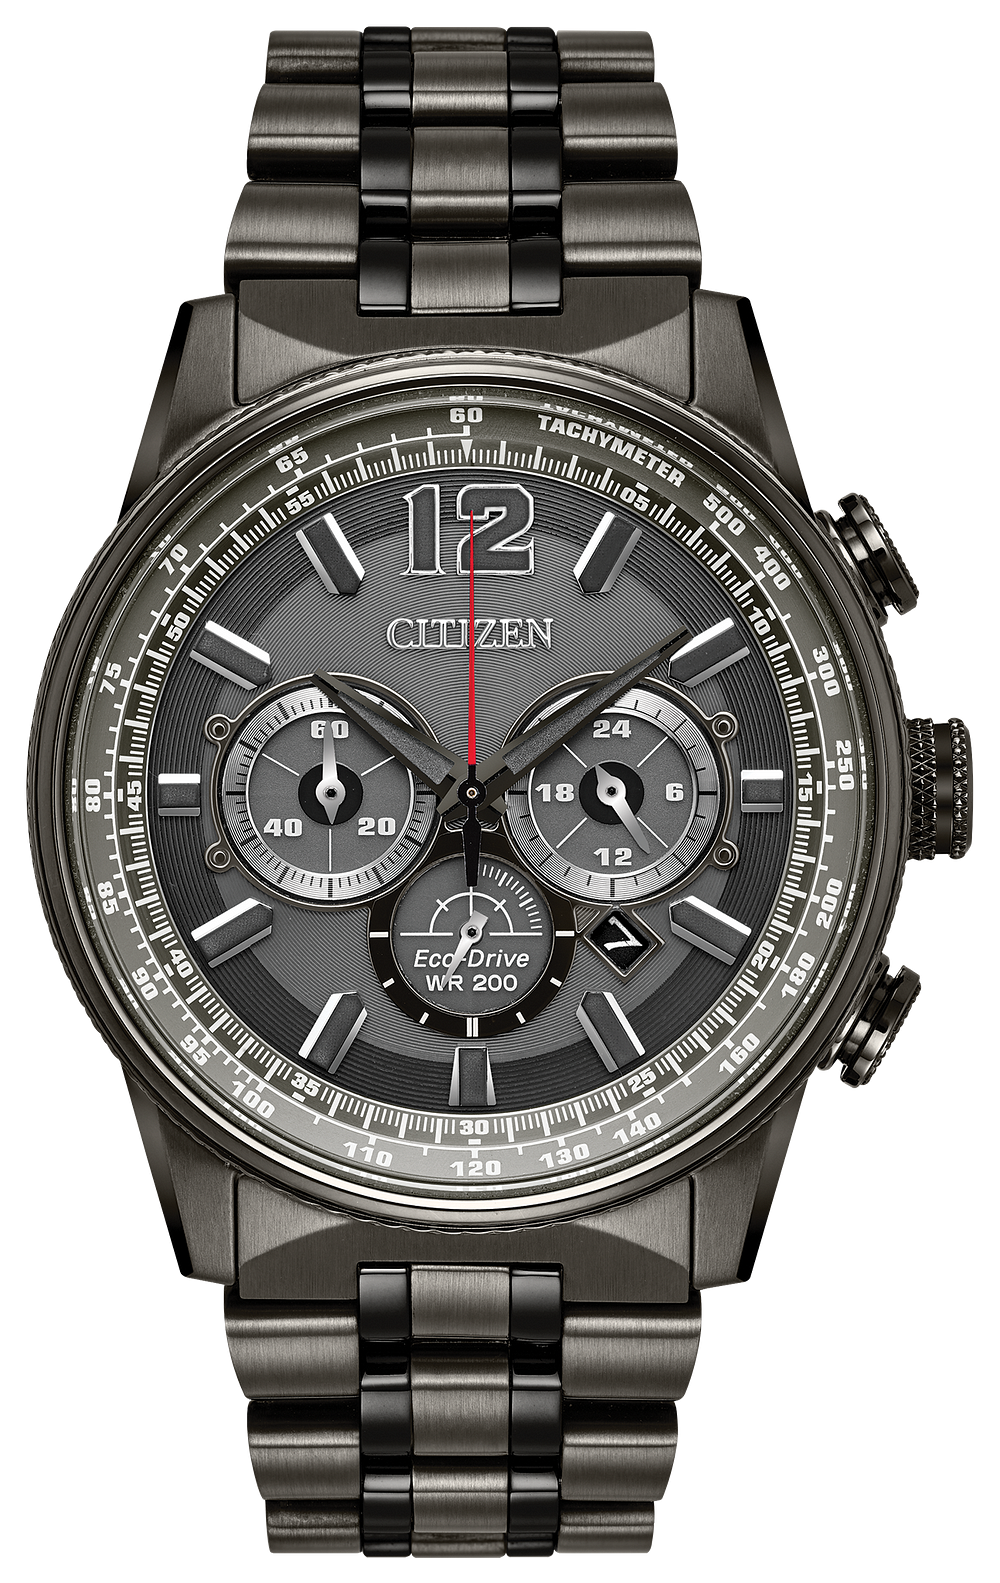 b5f75de8fe7662 Nighthawk - Men's Eco-Drive CA4377-53H Chronograph Watch | Citizen